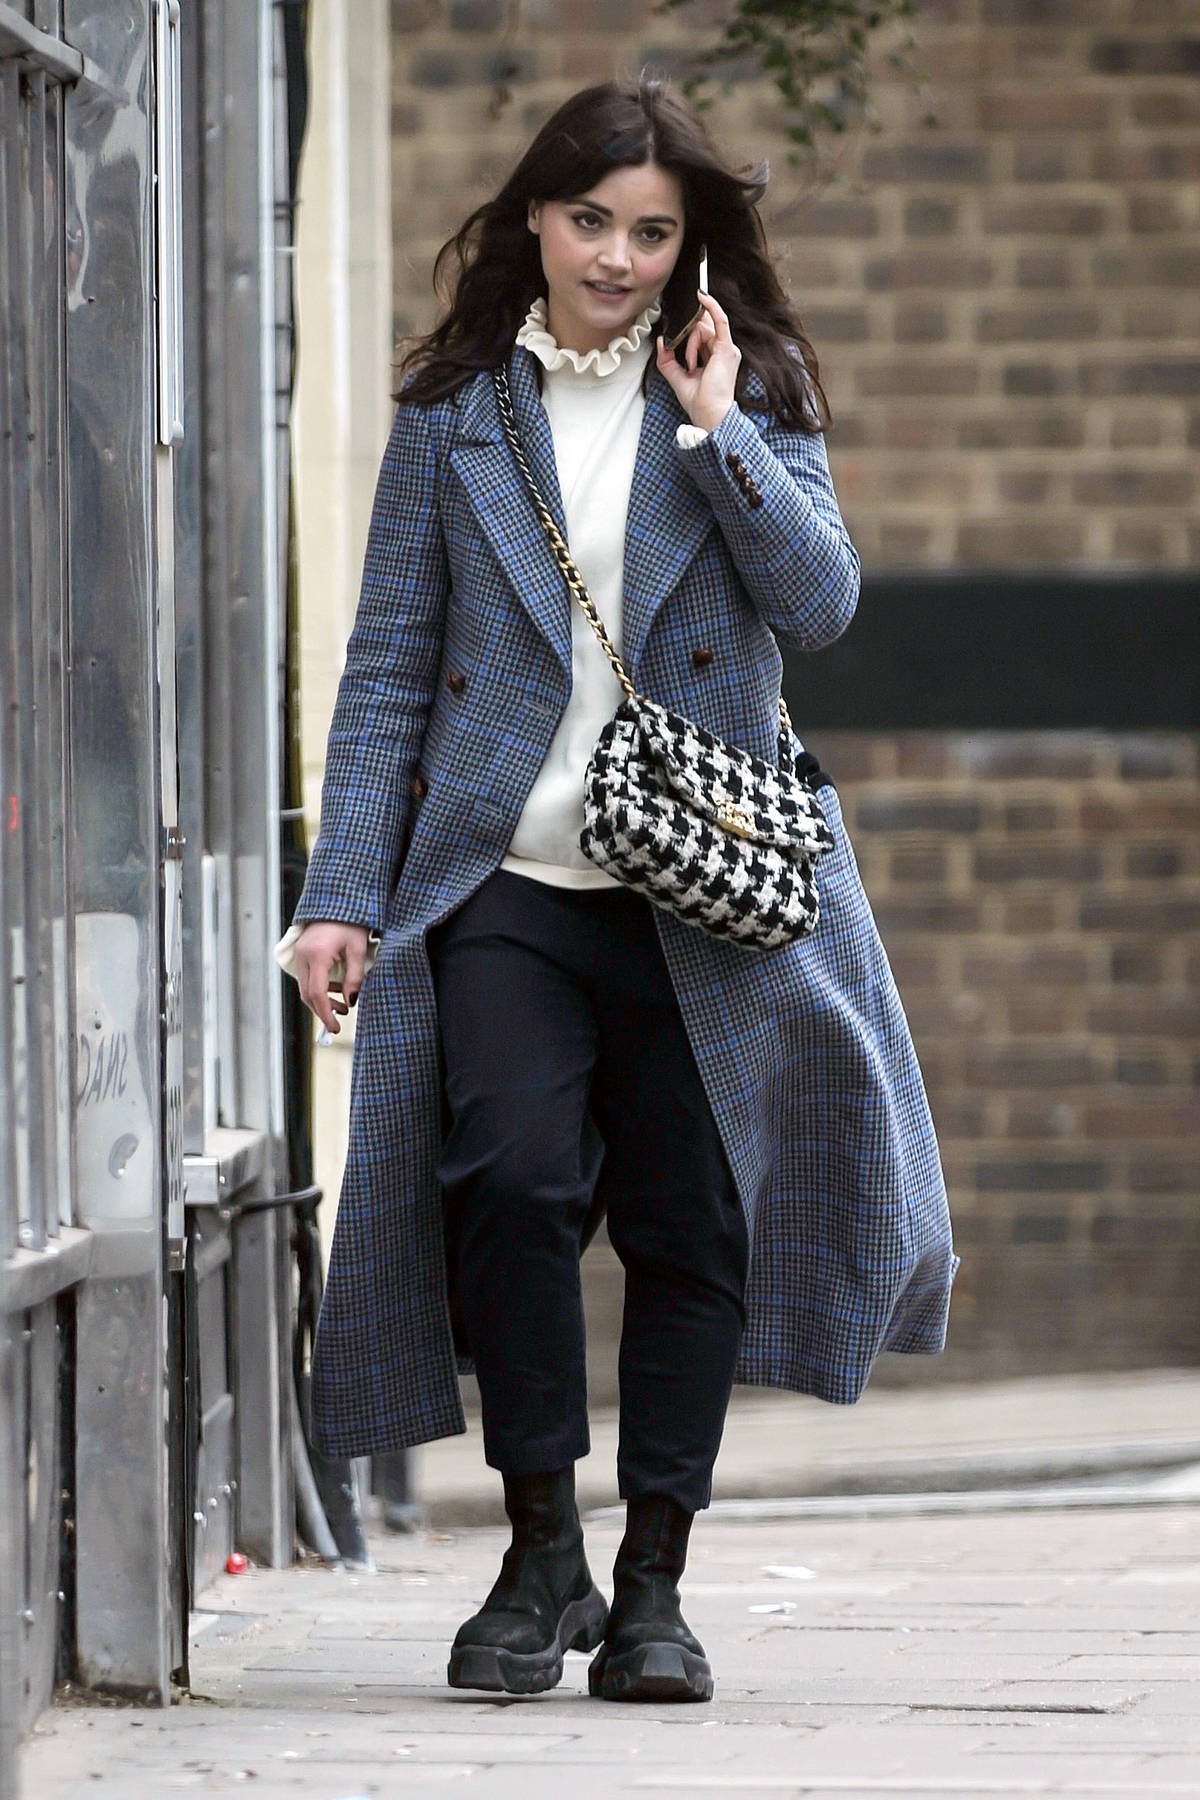 Jenna Coleman seen chatting on her phone while out for walk in London, UK